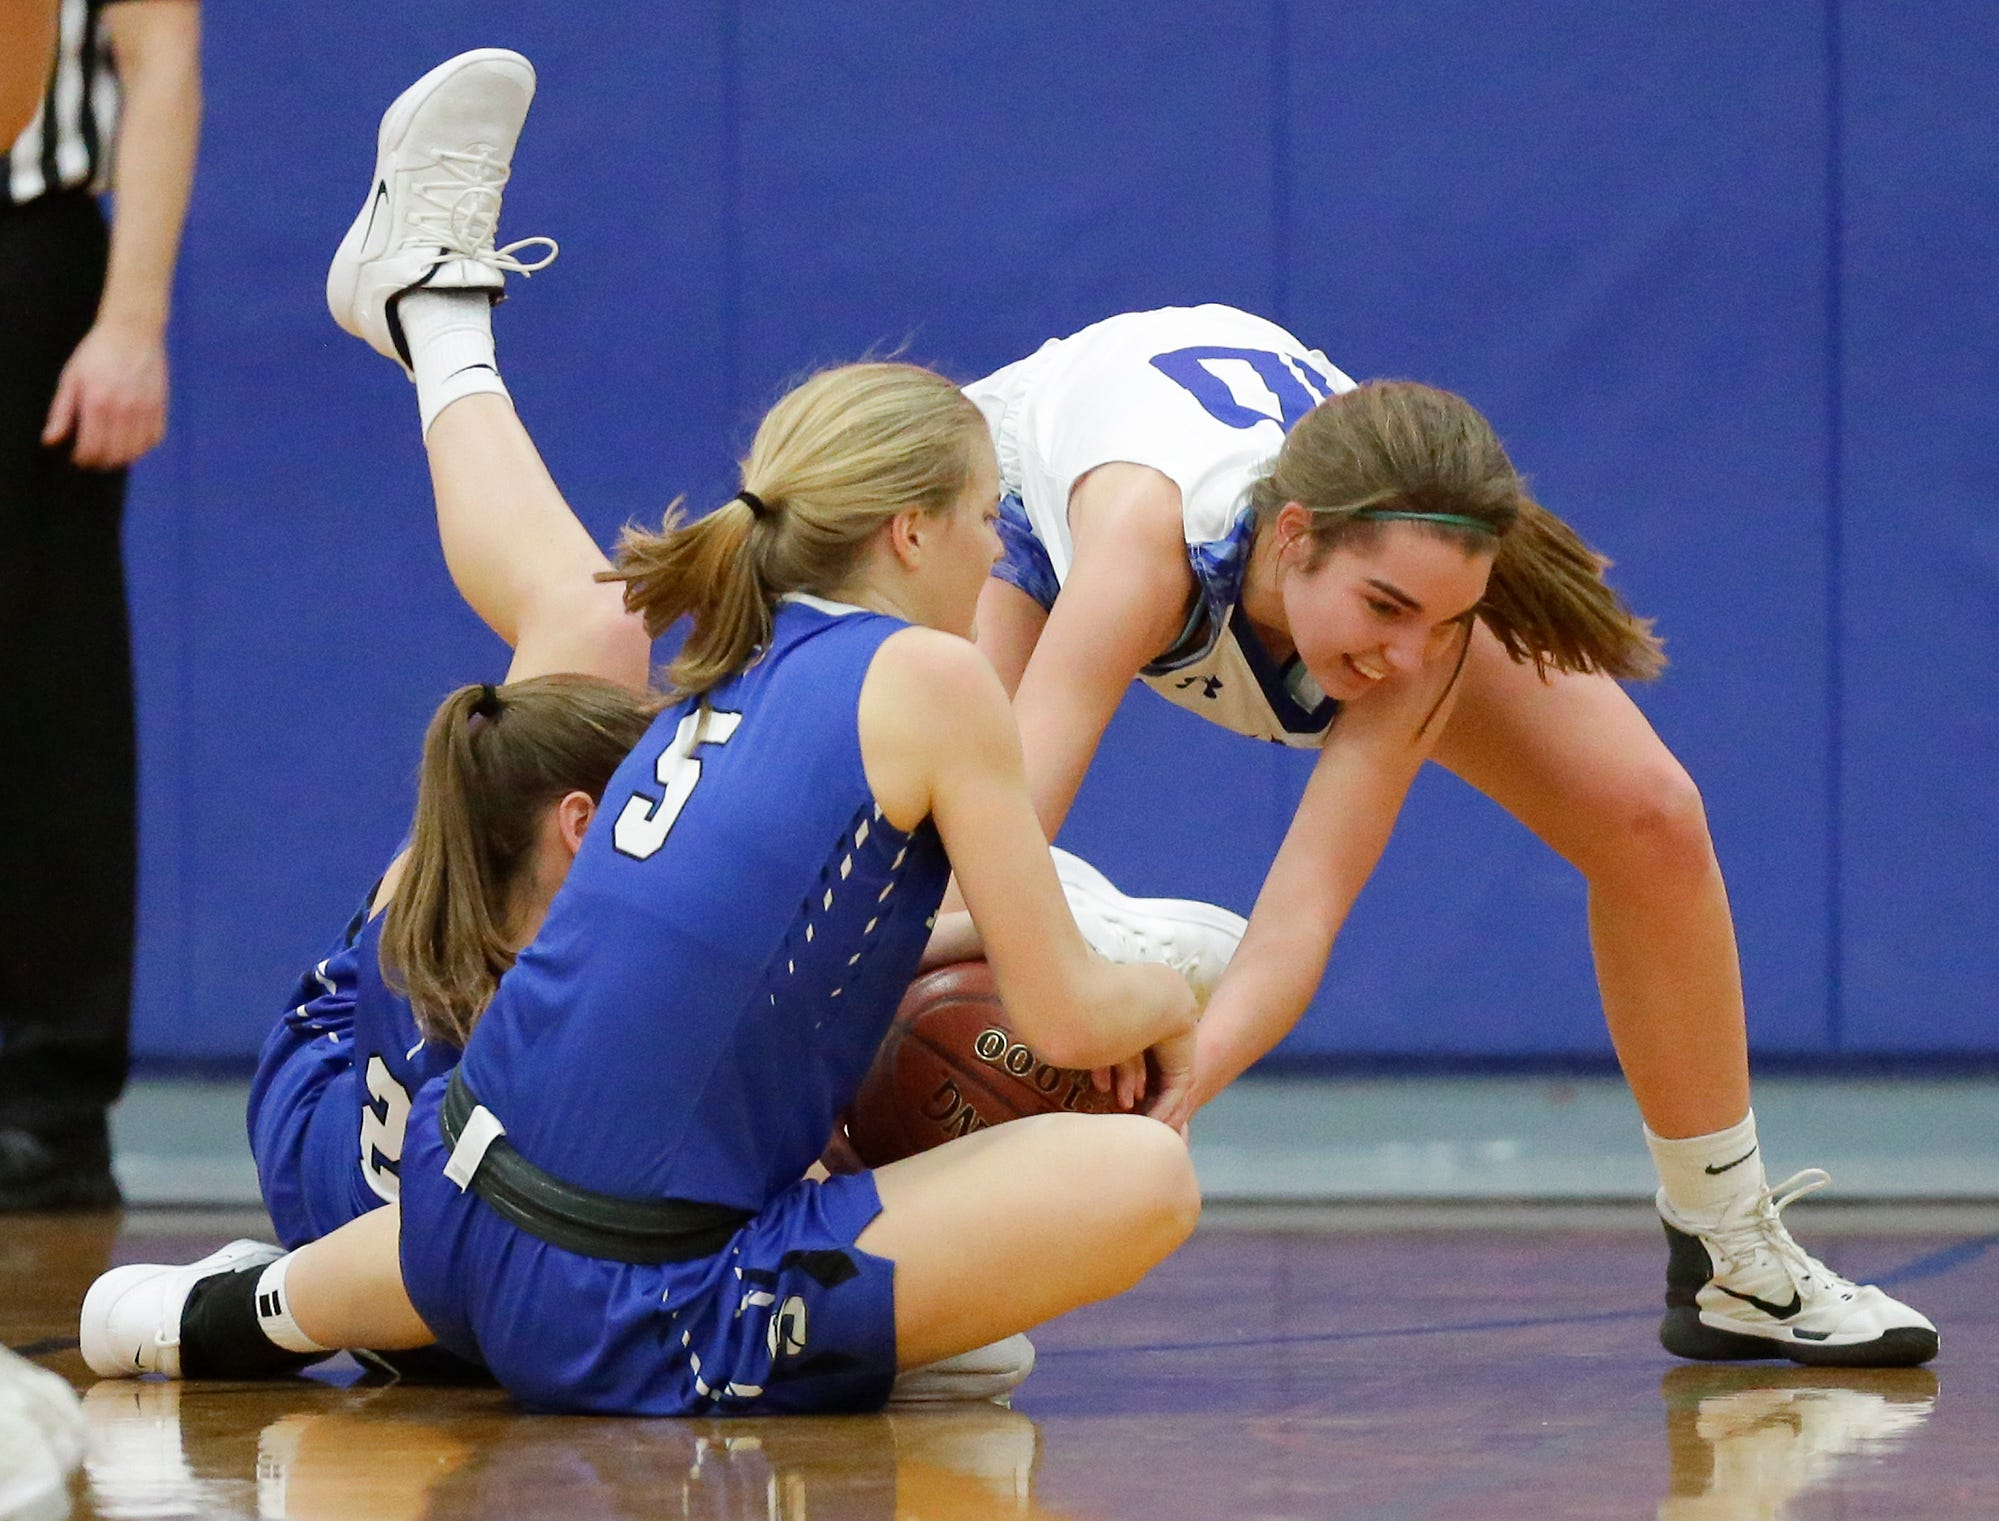 Winnebago Lutheran Academy girls basketball's Kalli Wiechman battles for a loose ball with St. Mary's Springs Academy's Jennifer Chatterton (21) and Gracie Rieder (5) during their game Tuesday, February 5, 2019 in Fond du Lac, Wisconsin. Winnebago Lutheran won the game 44-35. Doug Raflik/USA TODAY NETWORK-Wisconsin